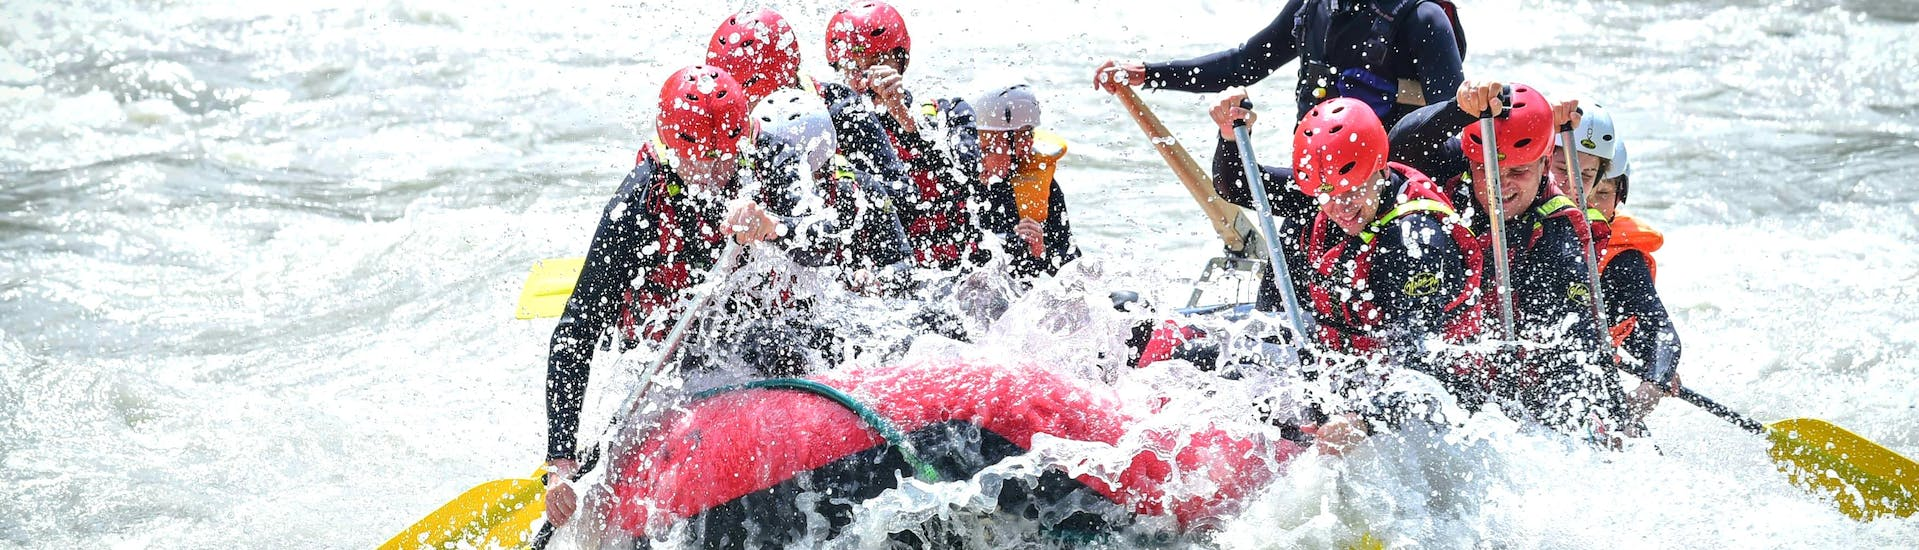 """A rafting group mastering the wild waves and rollers of Ötztaler Ache on their Rafting Tour """"Extreme"""" with Experience together with two state-certified guides from Natur Pur Outdoorsports."""